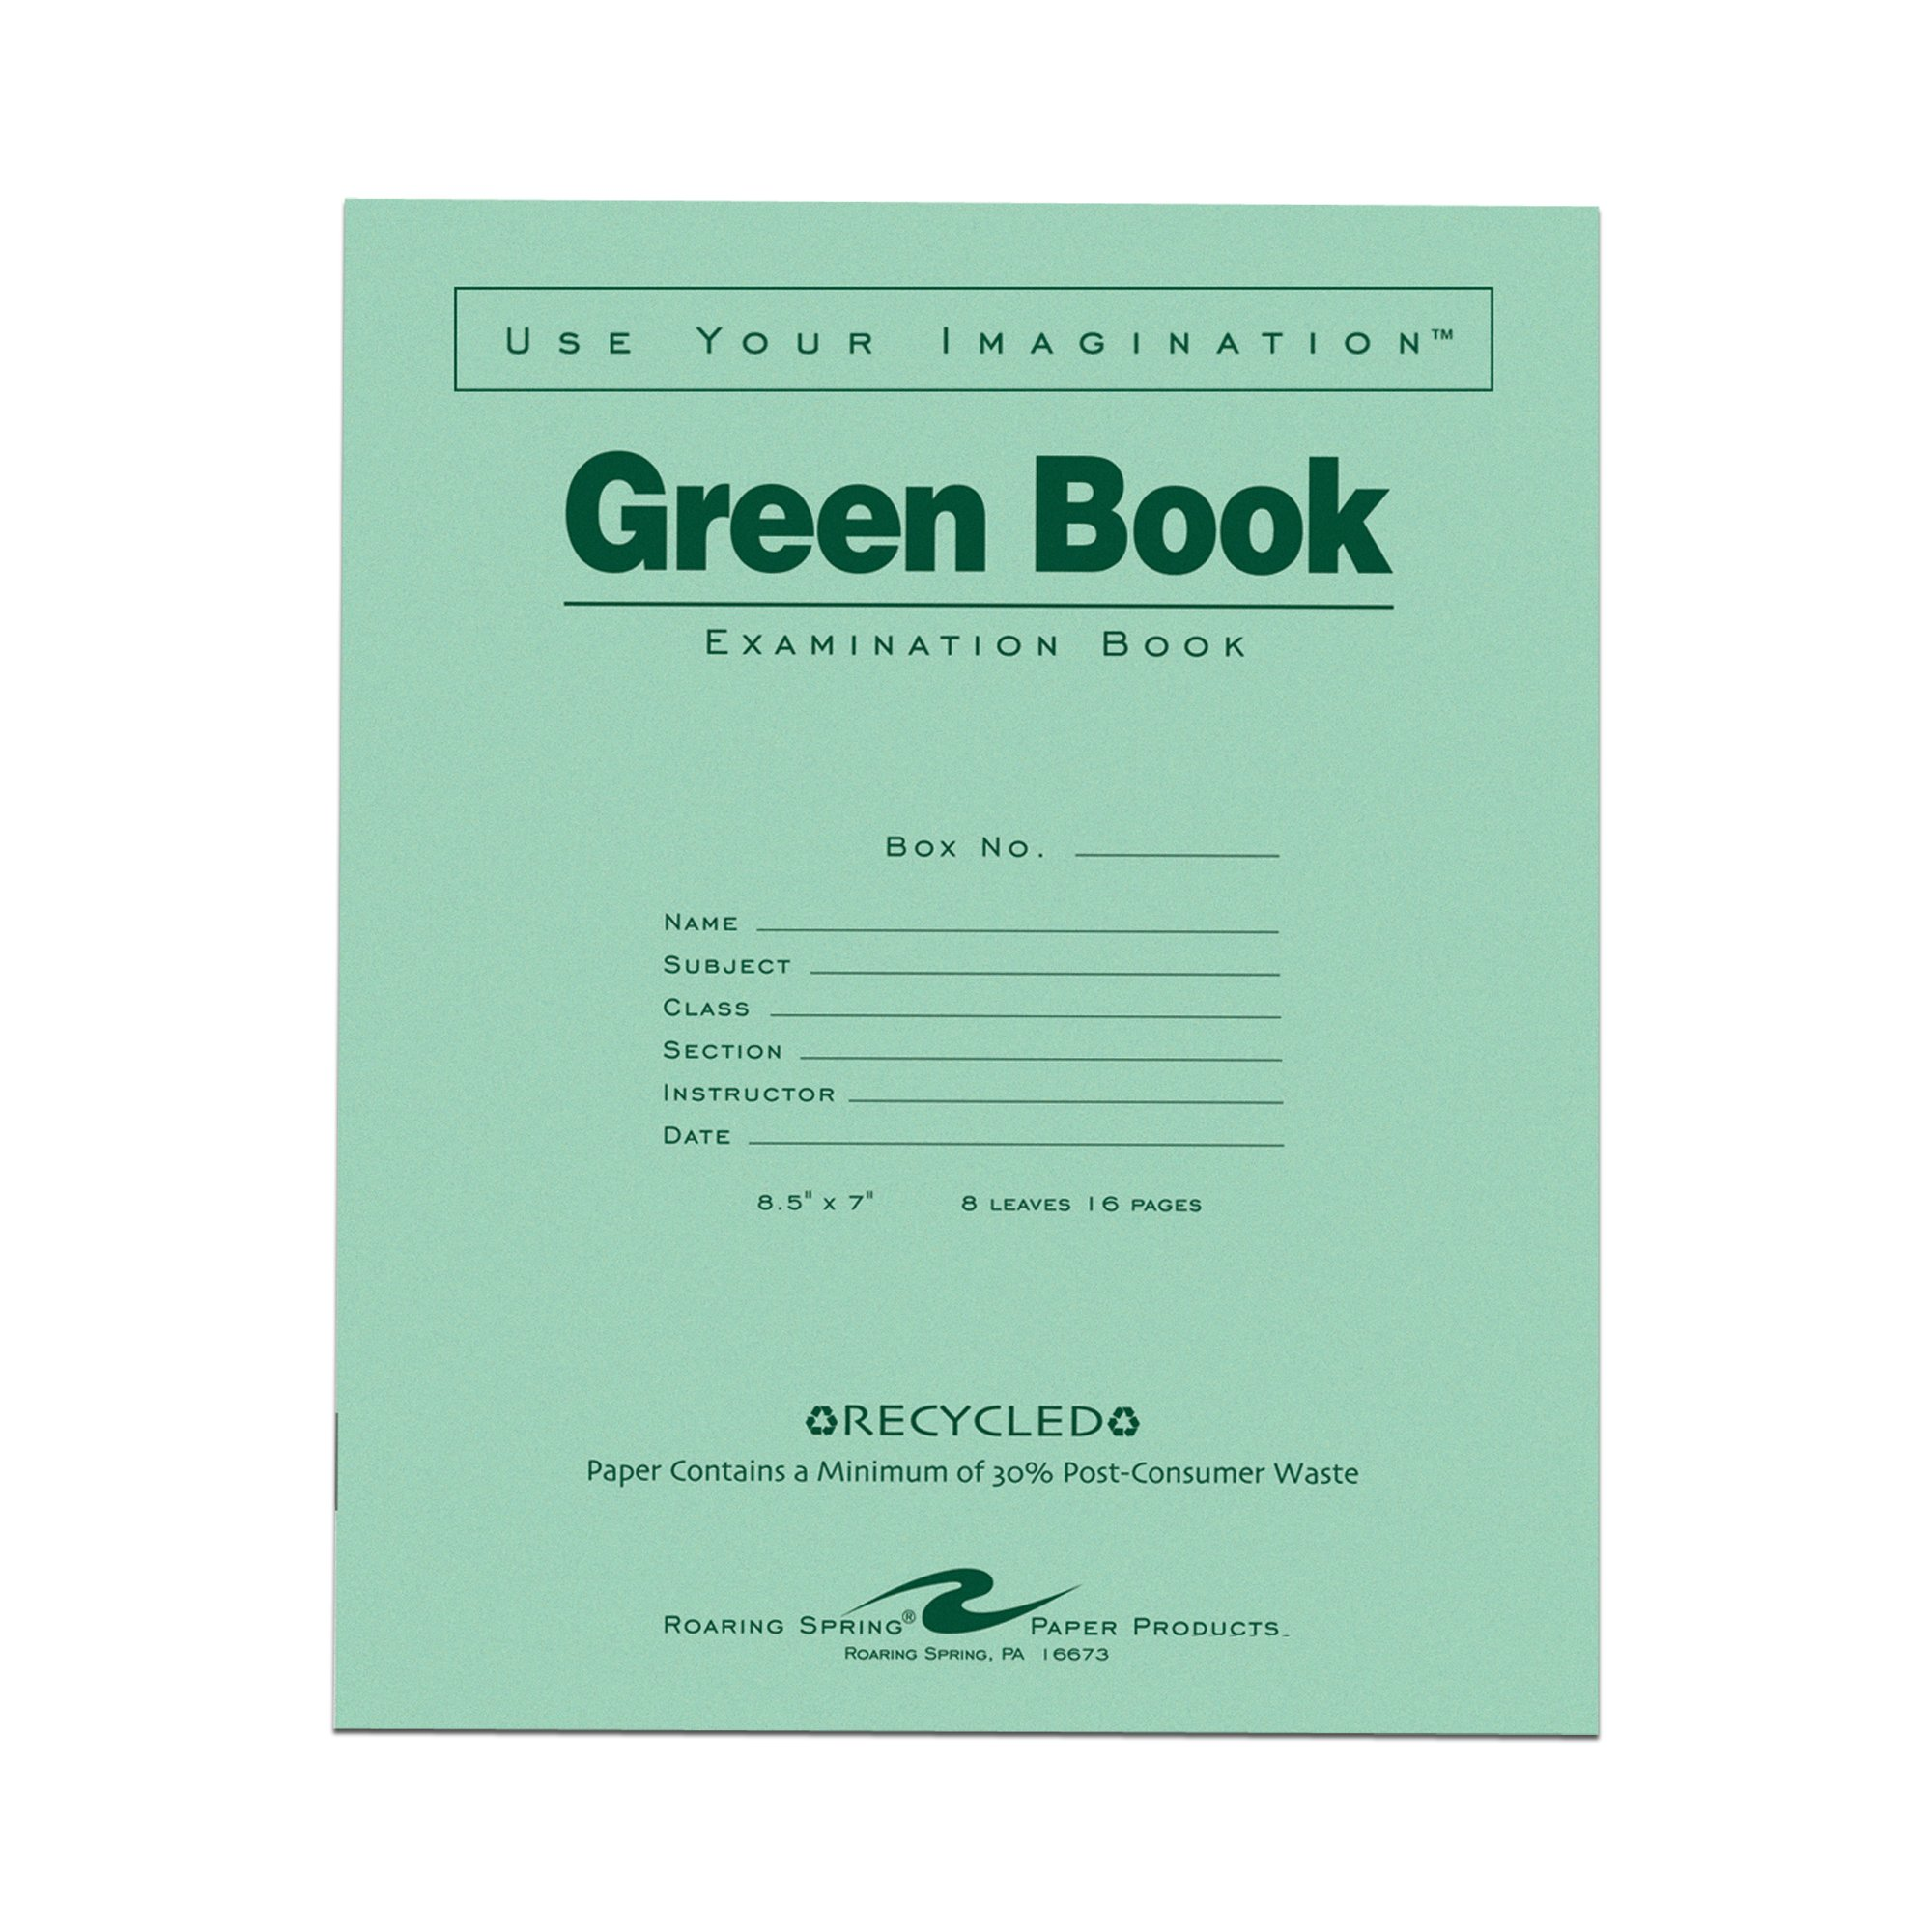 Roaring Spring Recycled Exam Book, 8.5'' x 7'', 8 sheets/16 pages.